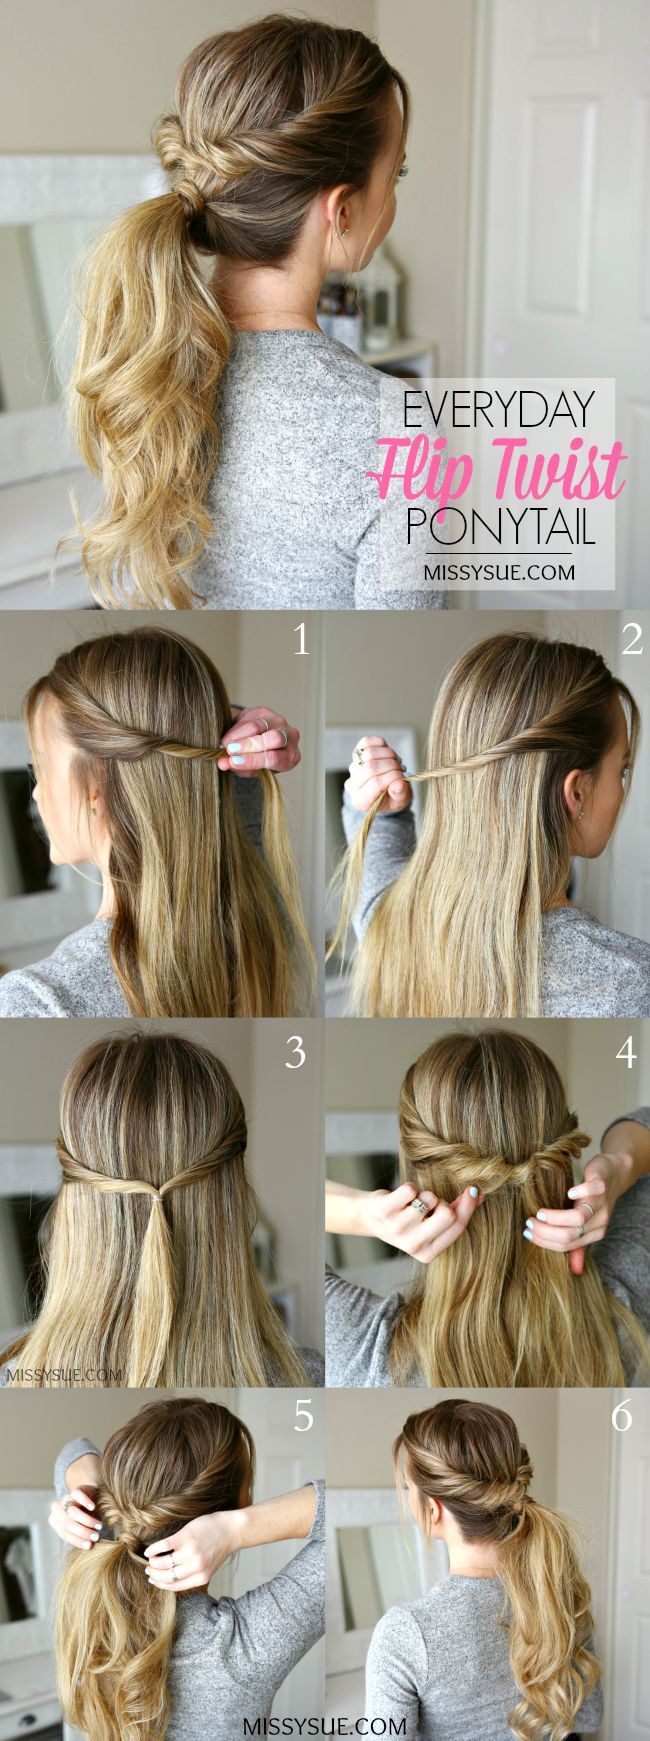 25+ gorgeous fall hairstyles ideas on pinterest | cute fall